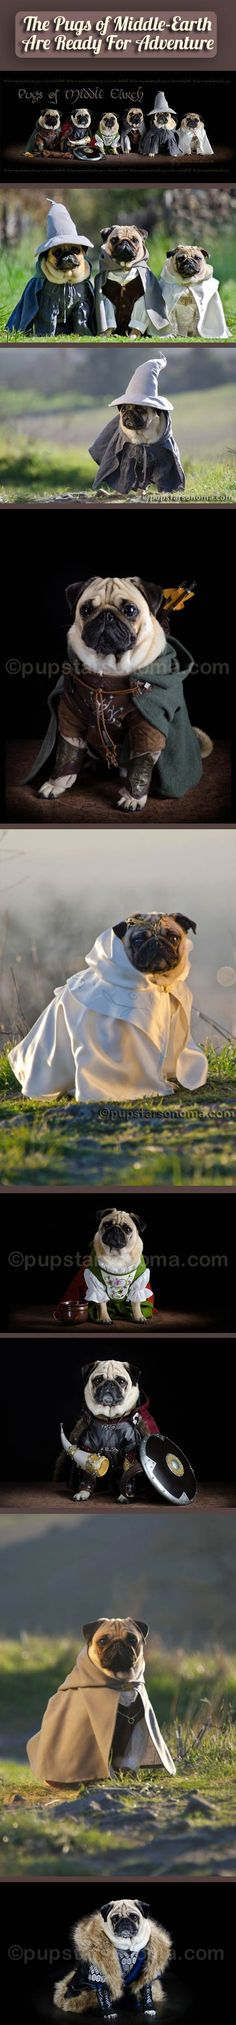 funny-pugs-Lord-Of-The-Rings-costumes